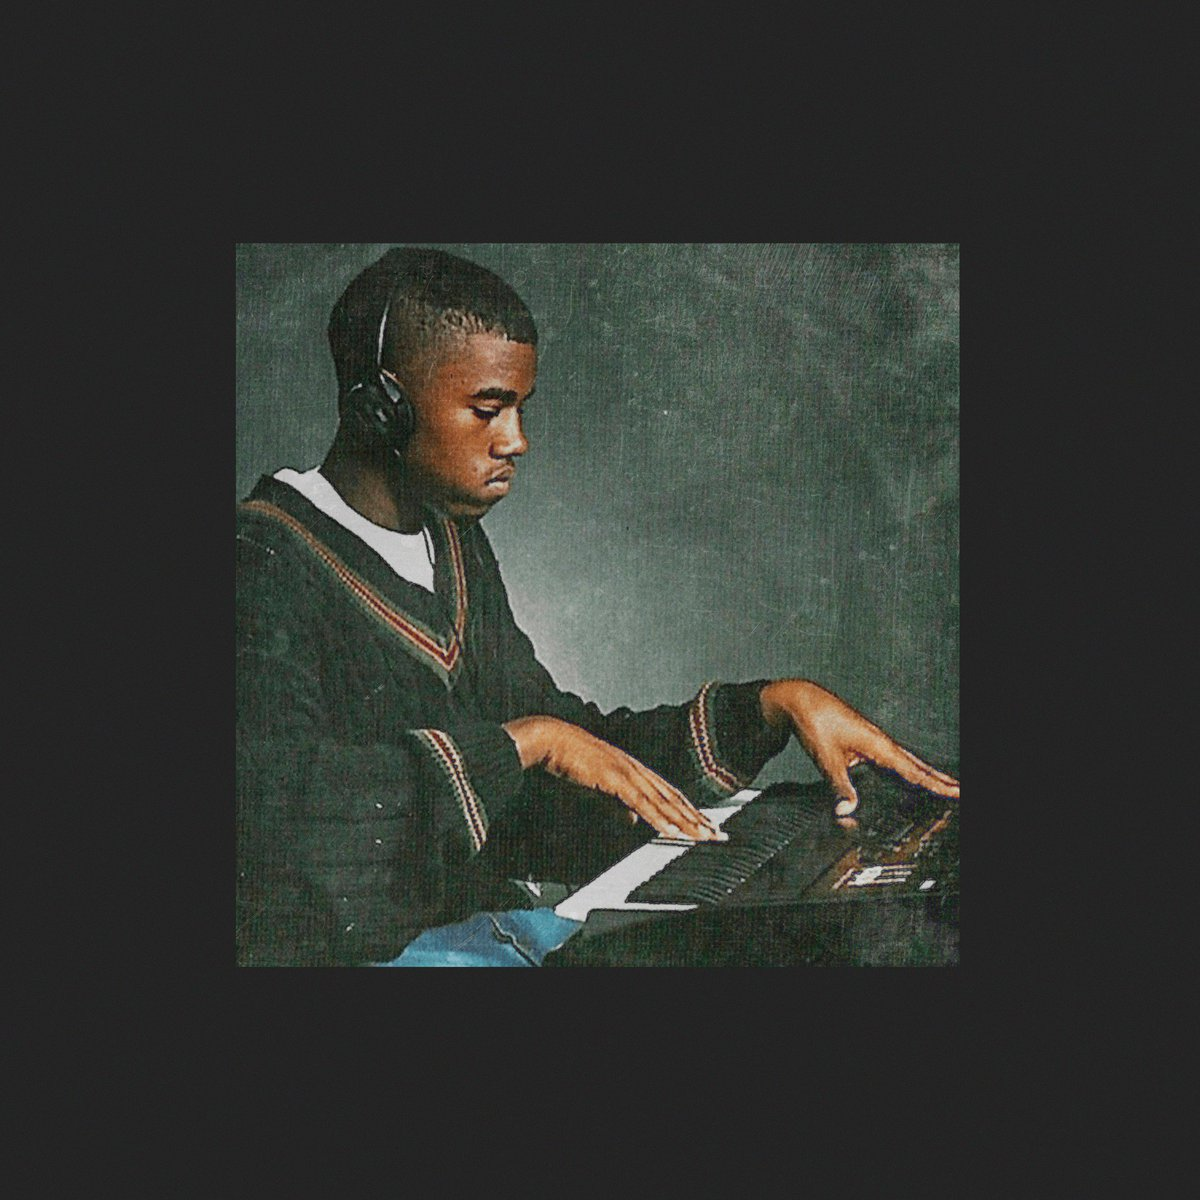 No More Parties in LA featuring Kendrick Lamar intro produced by me/track by Madlib  https://t.co/Mf6apCqn2D